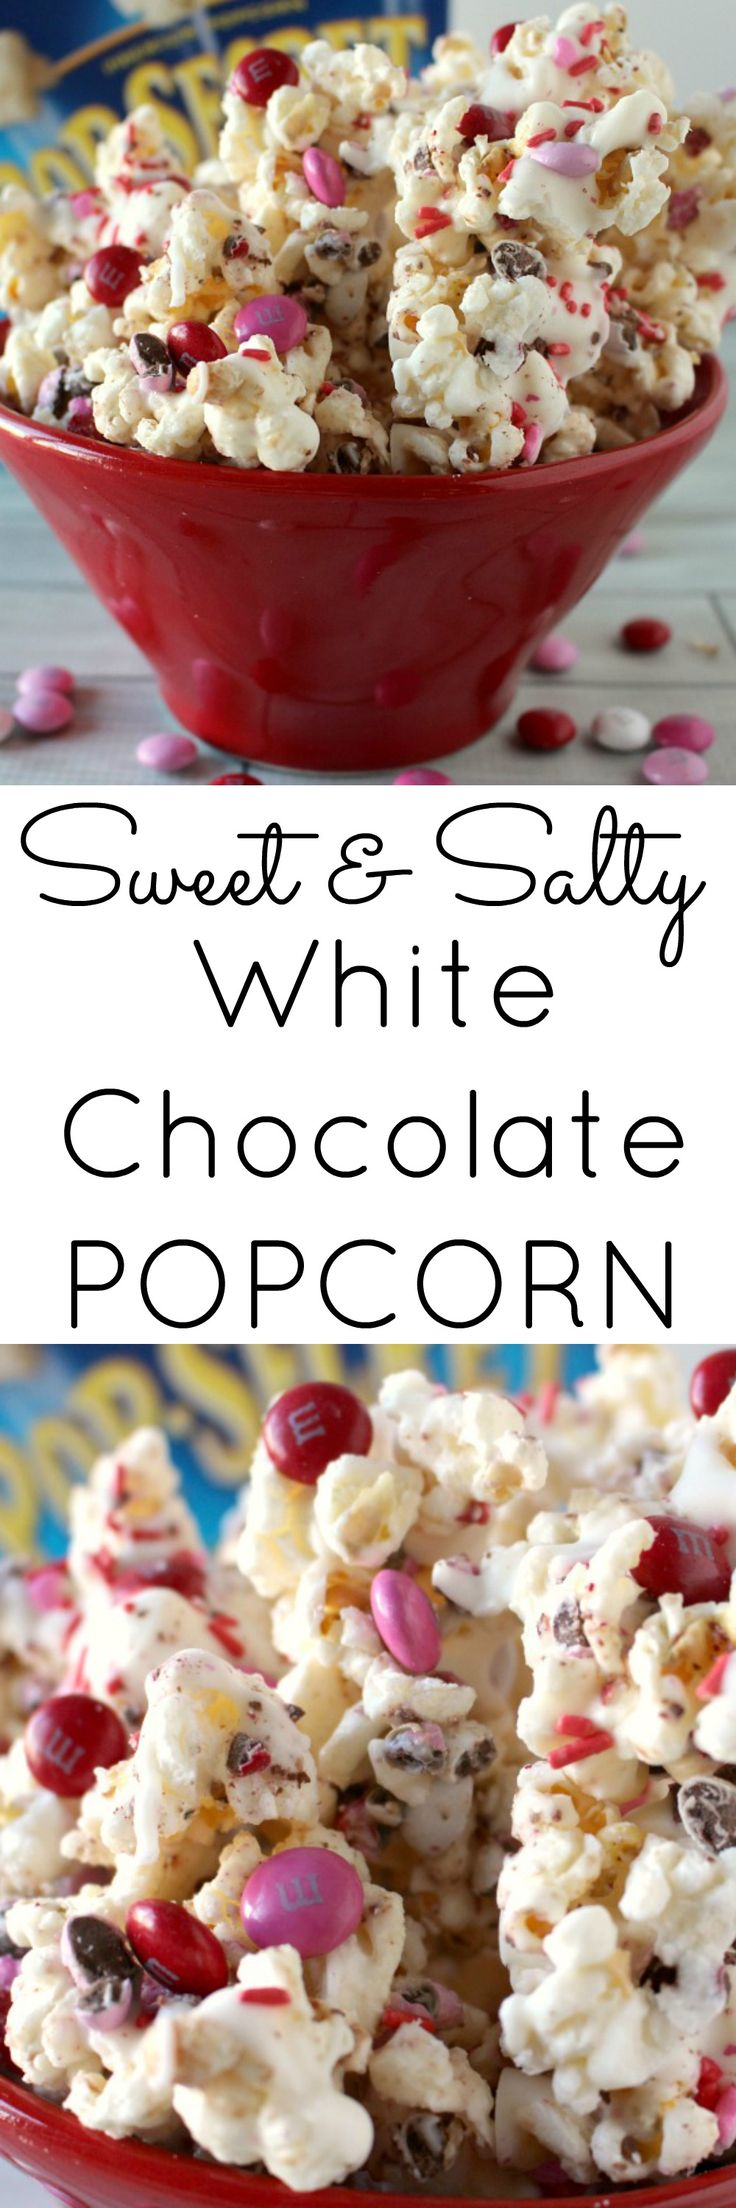 Sweet and Salty White Chocolate Popcorn with m&m's - only takes 15 minutes to make